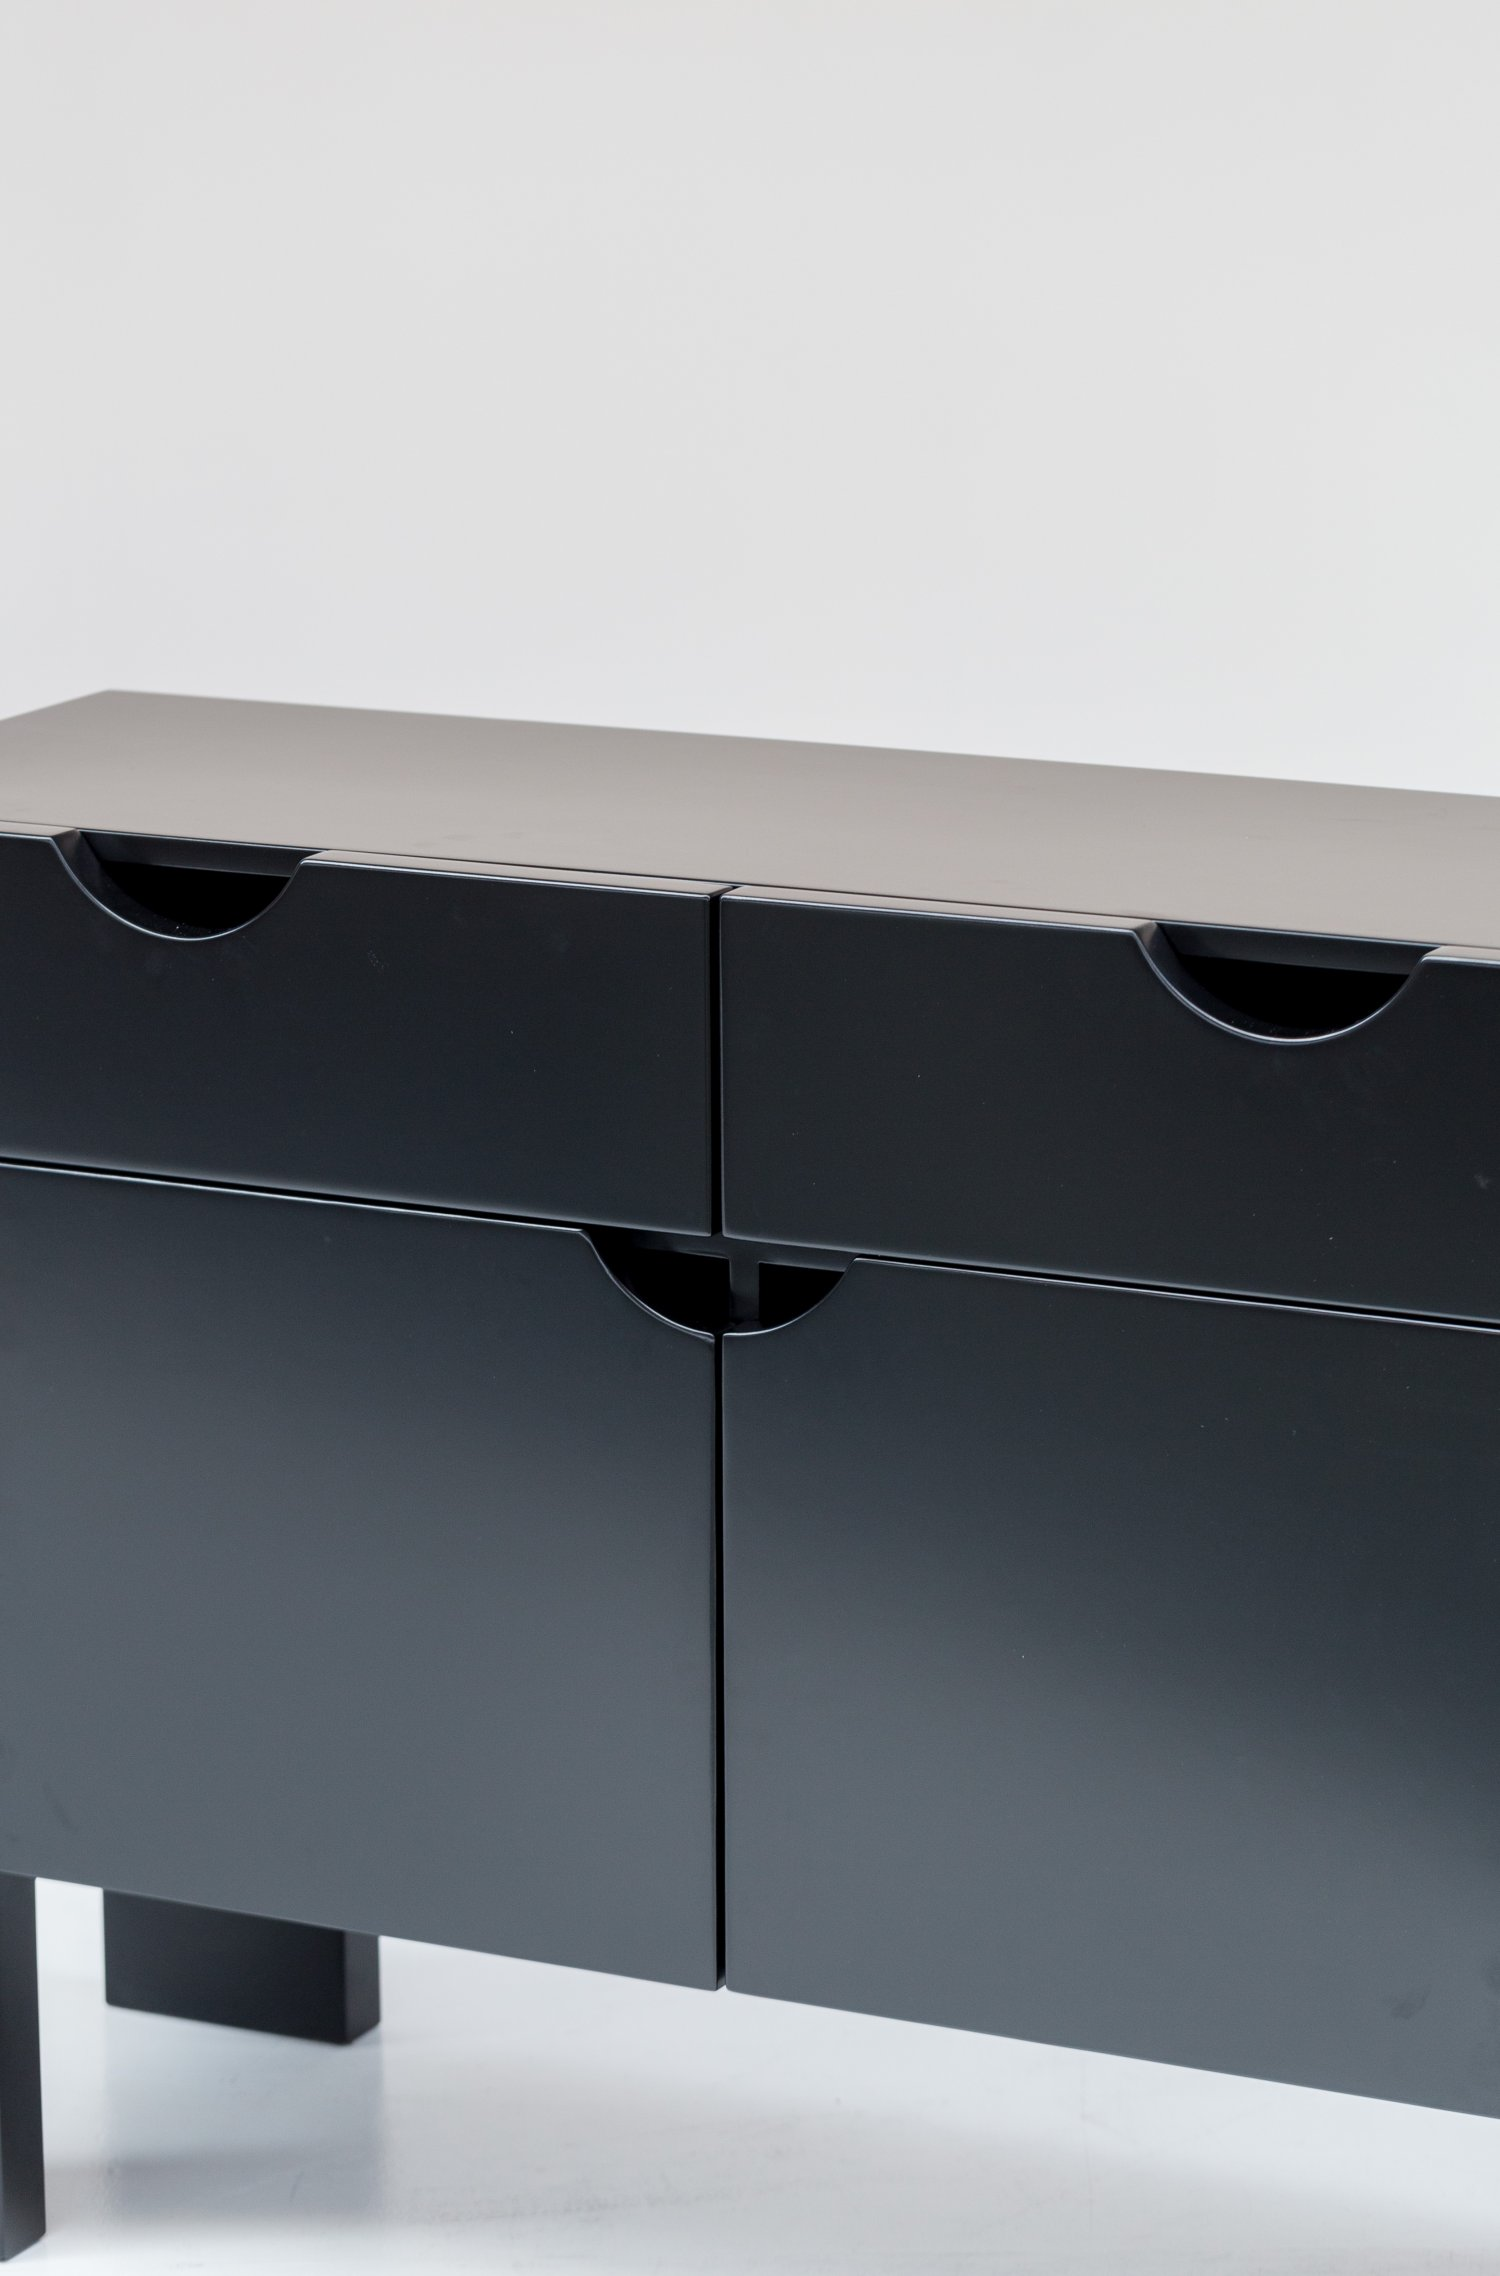 Rare cabinet by Claire Bataille and Paul Ibens for Tspectrum